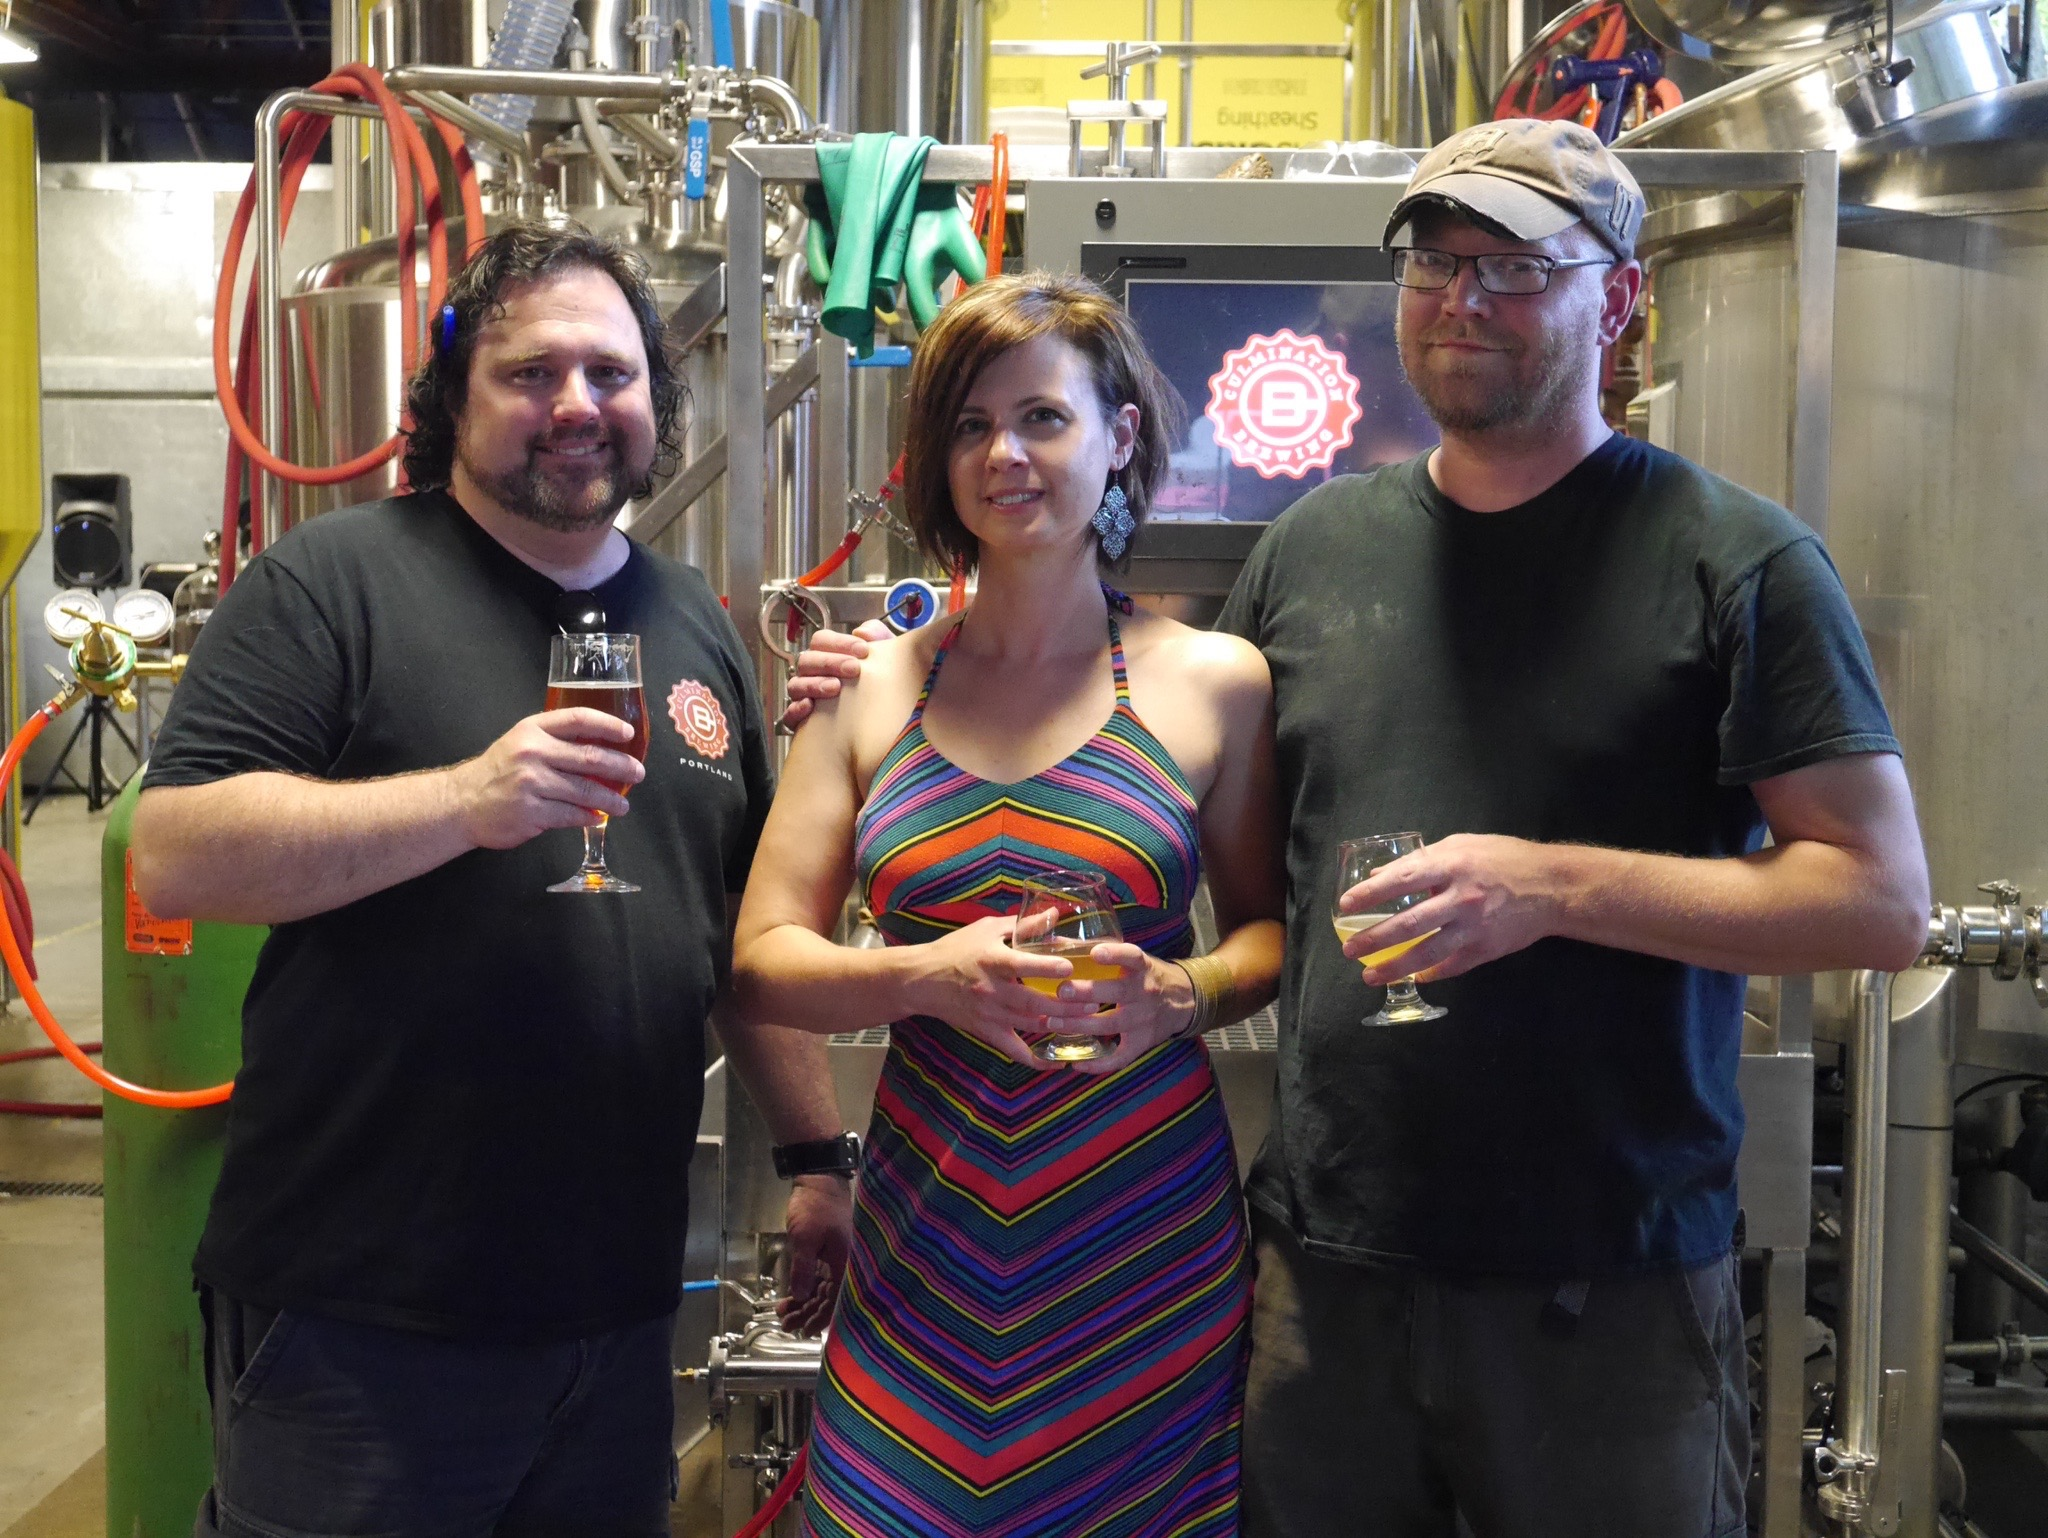 Steven Shomler, April Sluiter and Tomas Sluiter at Culmination Brewing in NE Portland